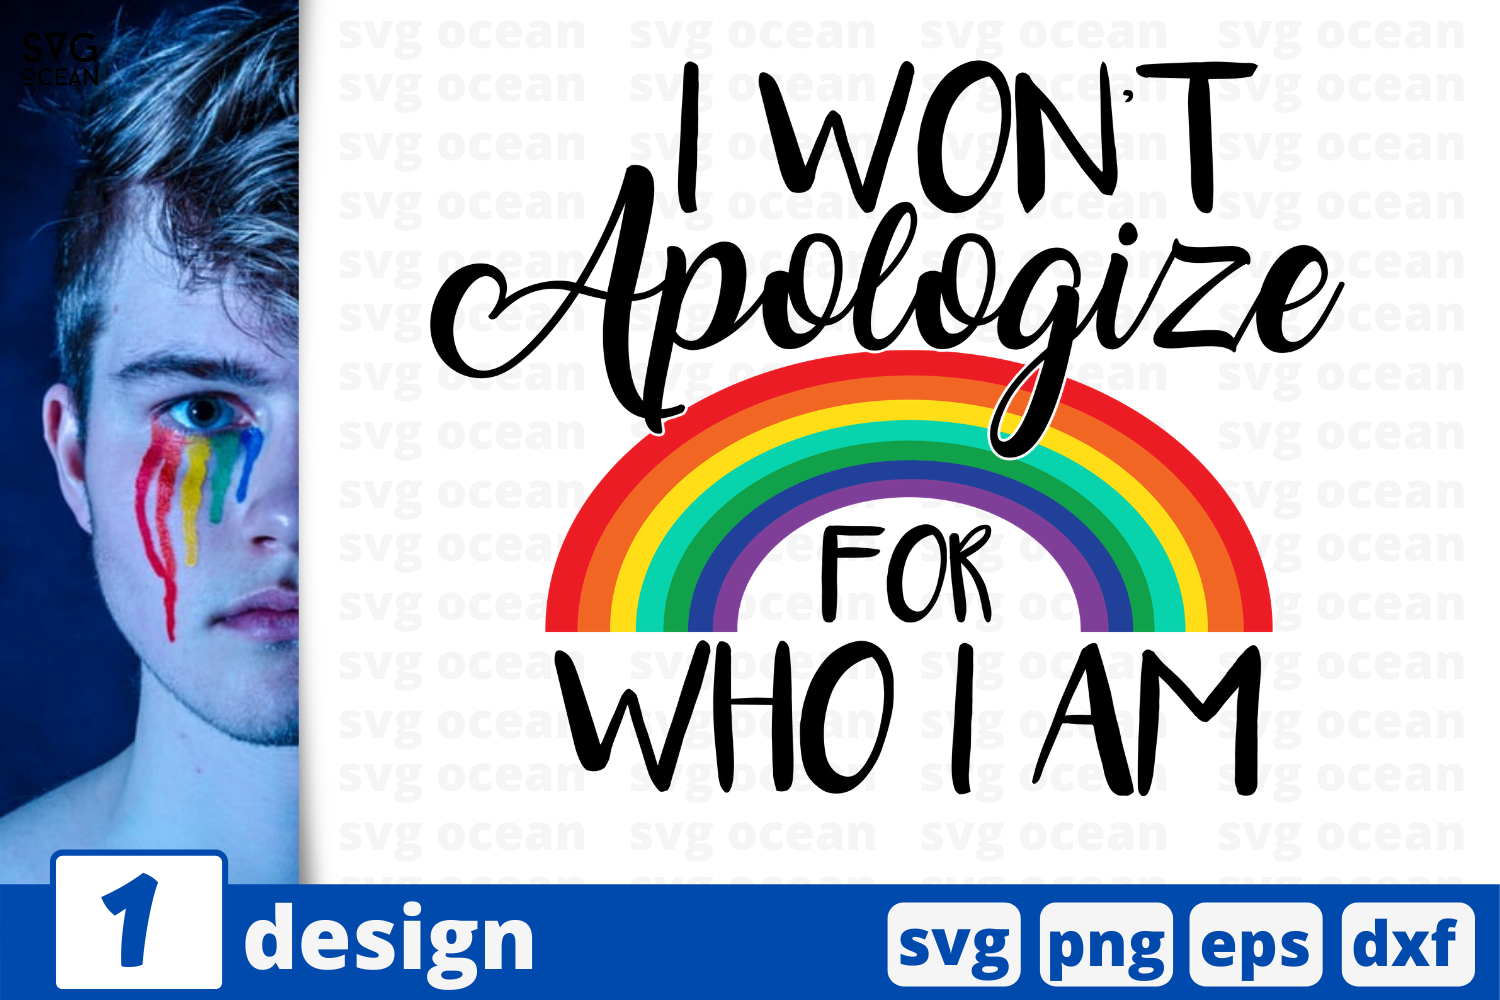 Download Free I Won T Apologize For Who I Am Graphic By Svgocean Creative for Cricut Explore, Silhouette and other cutting machines.